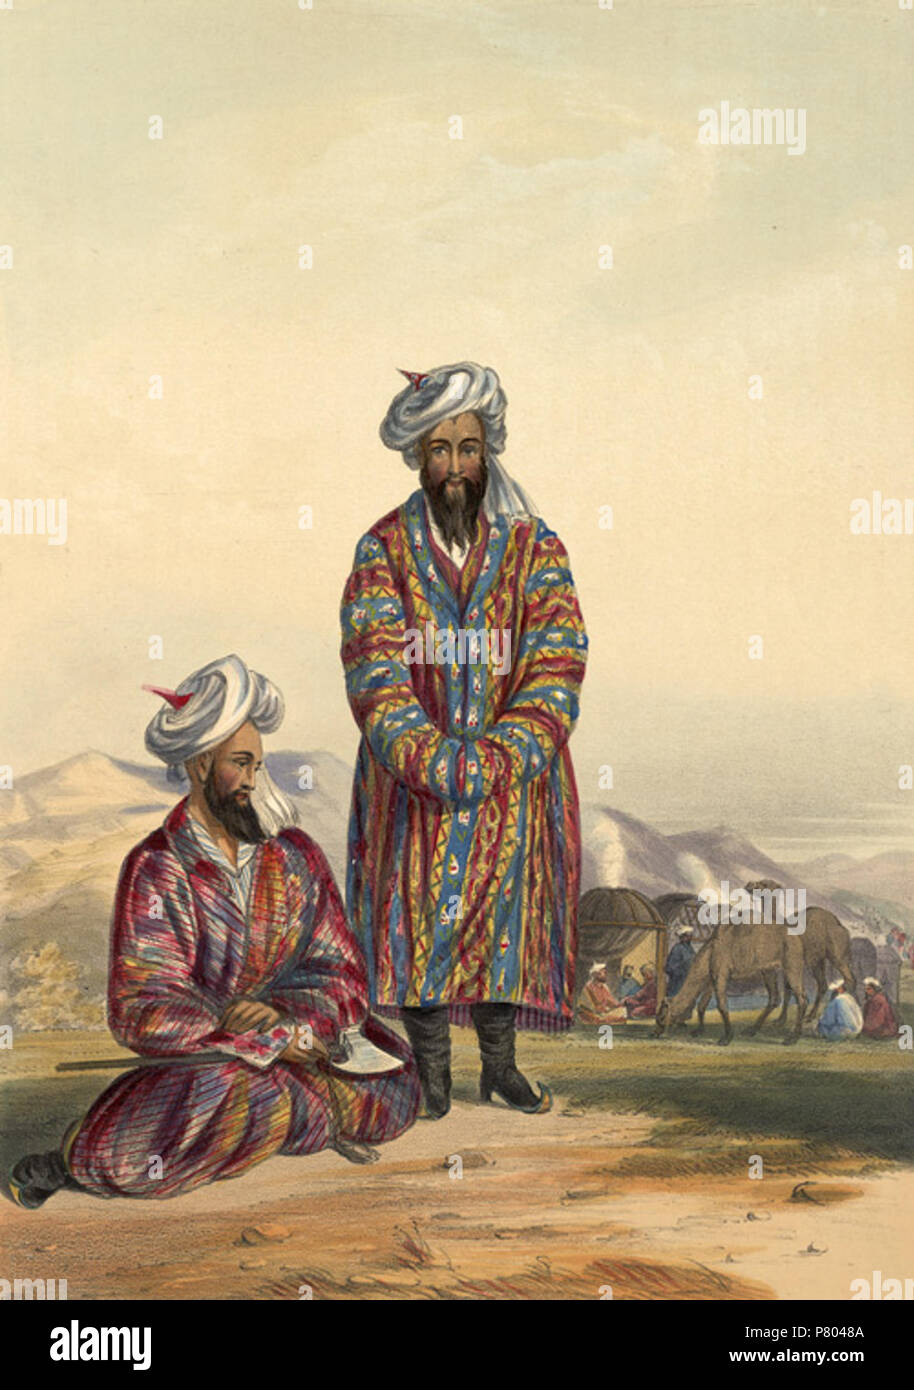 Oosbegs of Mooraud Bev This lithograph was taken from plate 20 of 'Afghaunistan' by Lietenant James Rattray. Rattray was introduced to the subjects of this sketch, Mirza Abdulhuq and Rustom Beg, at a conference in the fort of Lughmani in Kohistan in August 1841. They were part of the powerful Uzbeg tribe of Qataghan in Turkestan, whose chief, Murad Beg, was the Mir of Kunduz. His dominion lay north of the Hindu Kush and south of the River Amu, between Bukhara and Kabul. Their national headdress of these Turcomen was made of white muslin, wound around a high pointed skullcap of coloured silk an - Stock Image